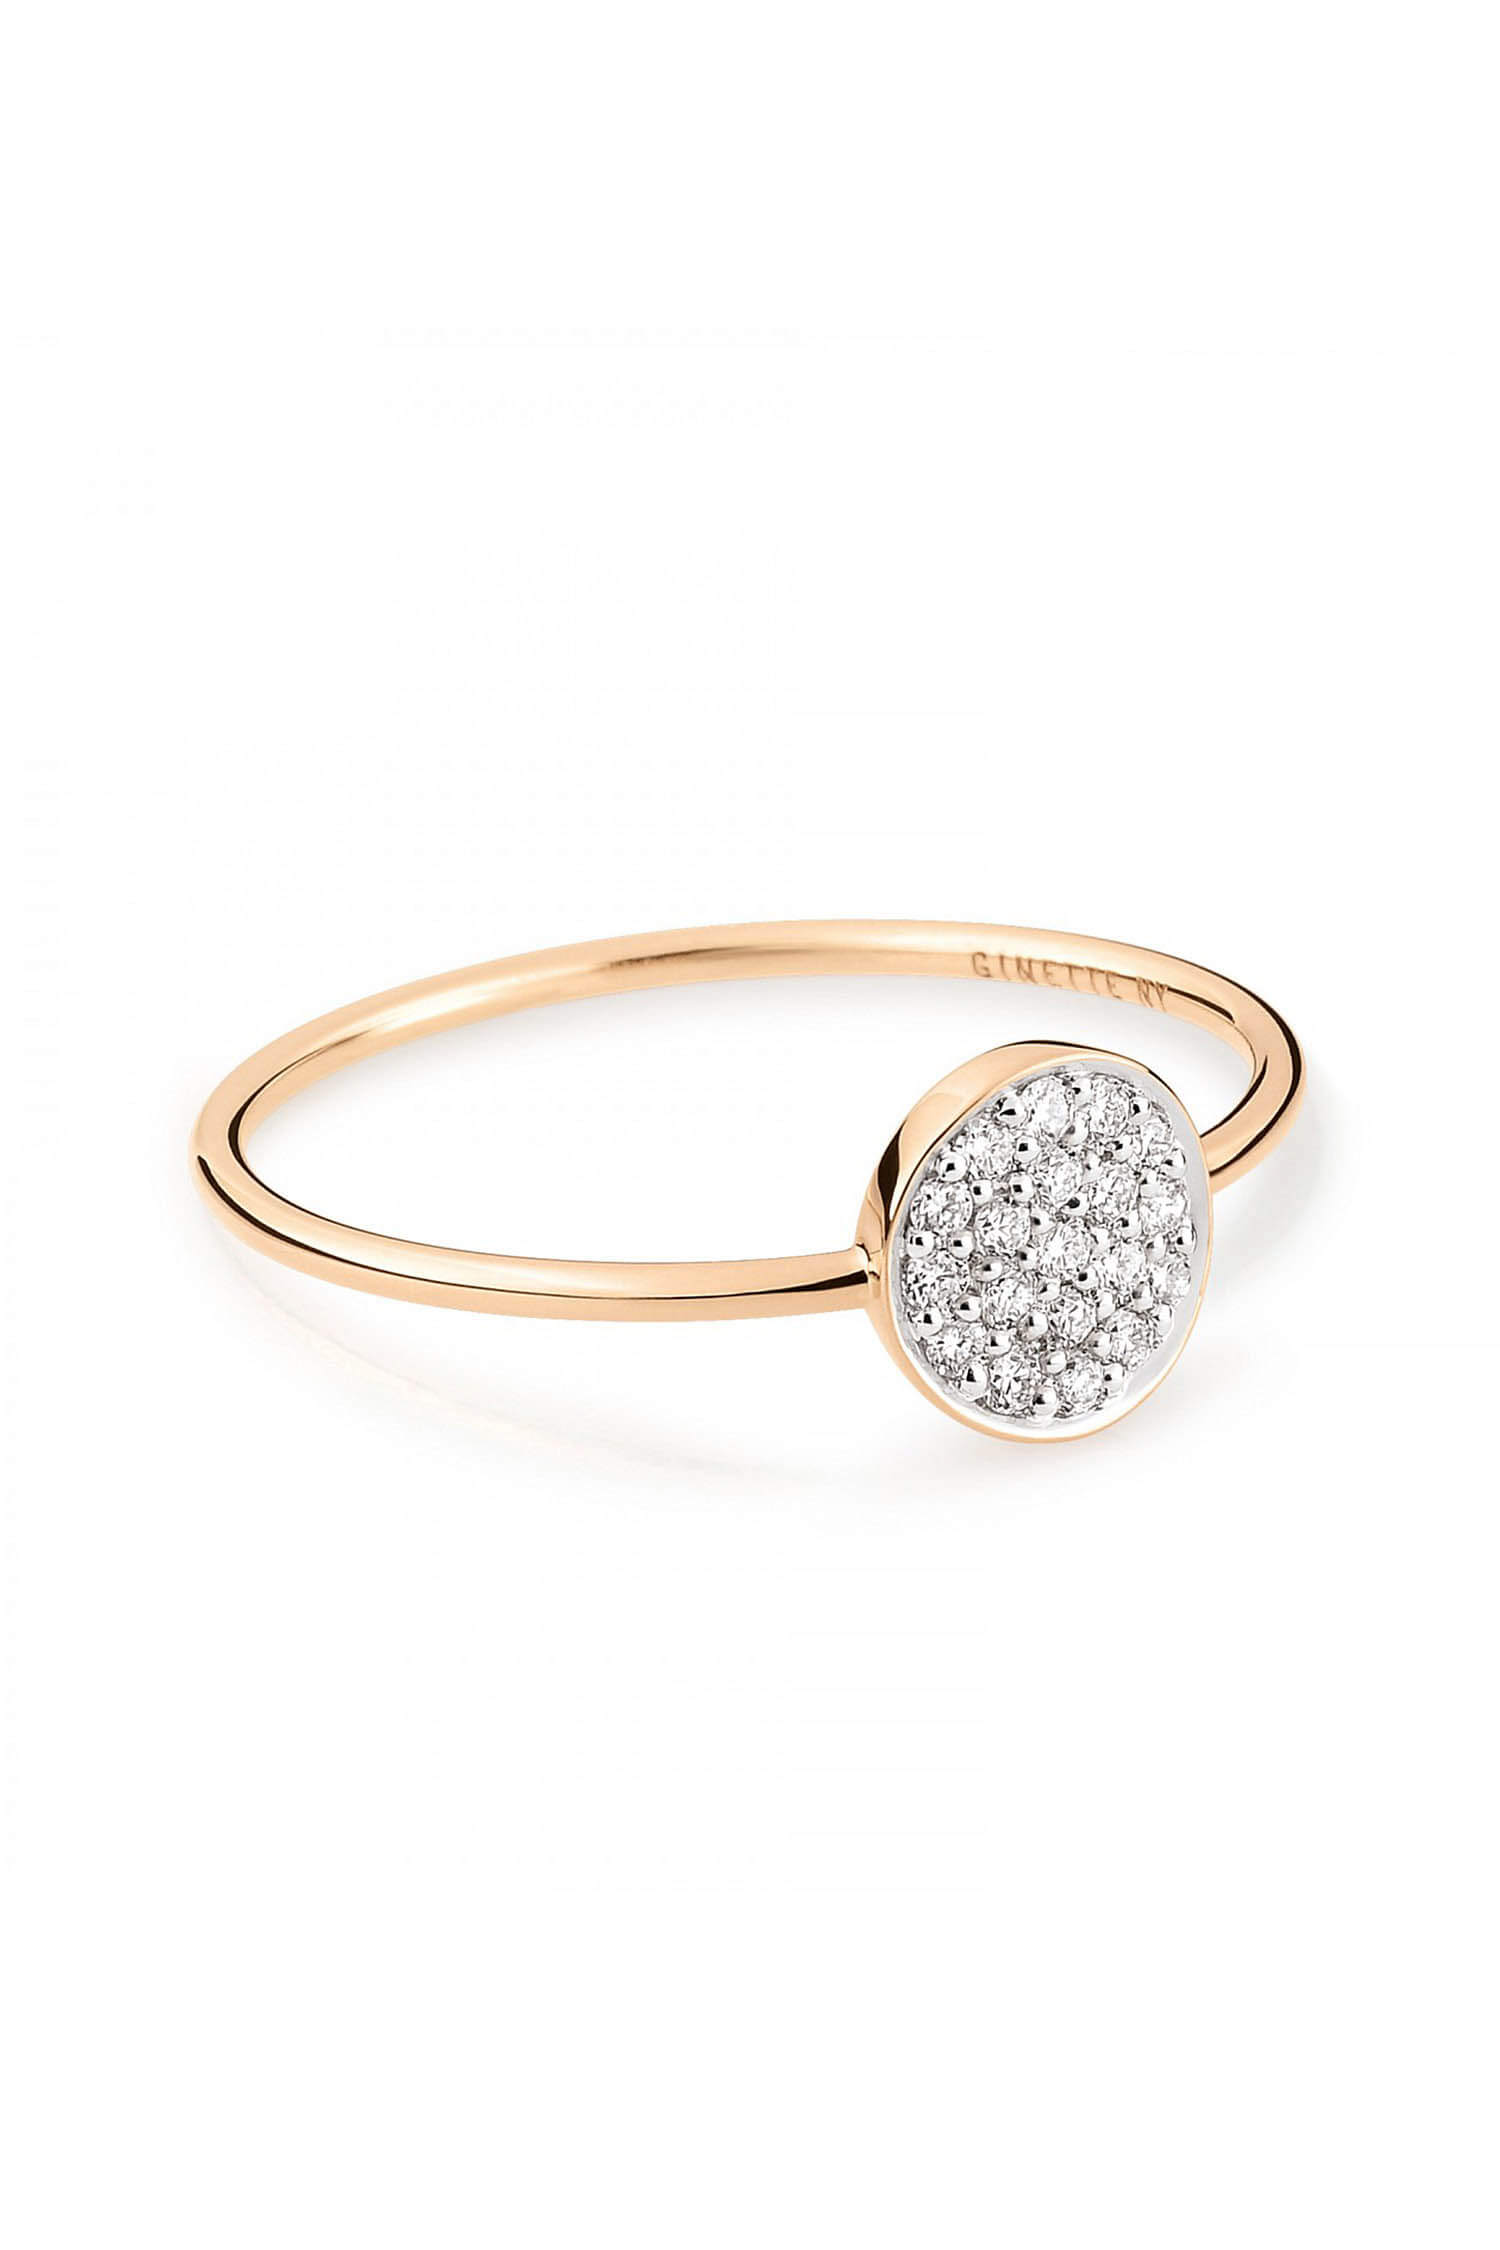 Ginette NY   Bague Mini Diamond Ever Disc. Appuyez pour zoomer 1383b391ab79